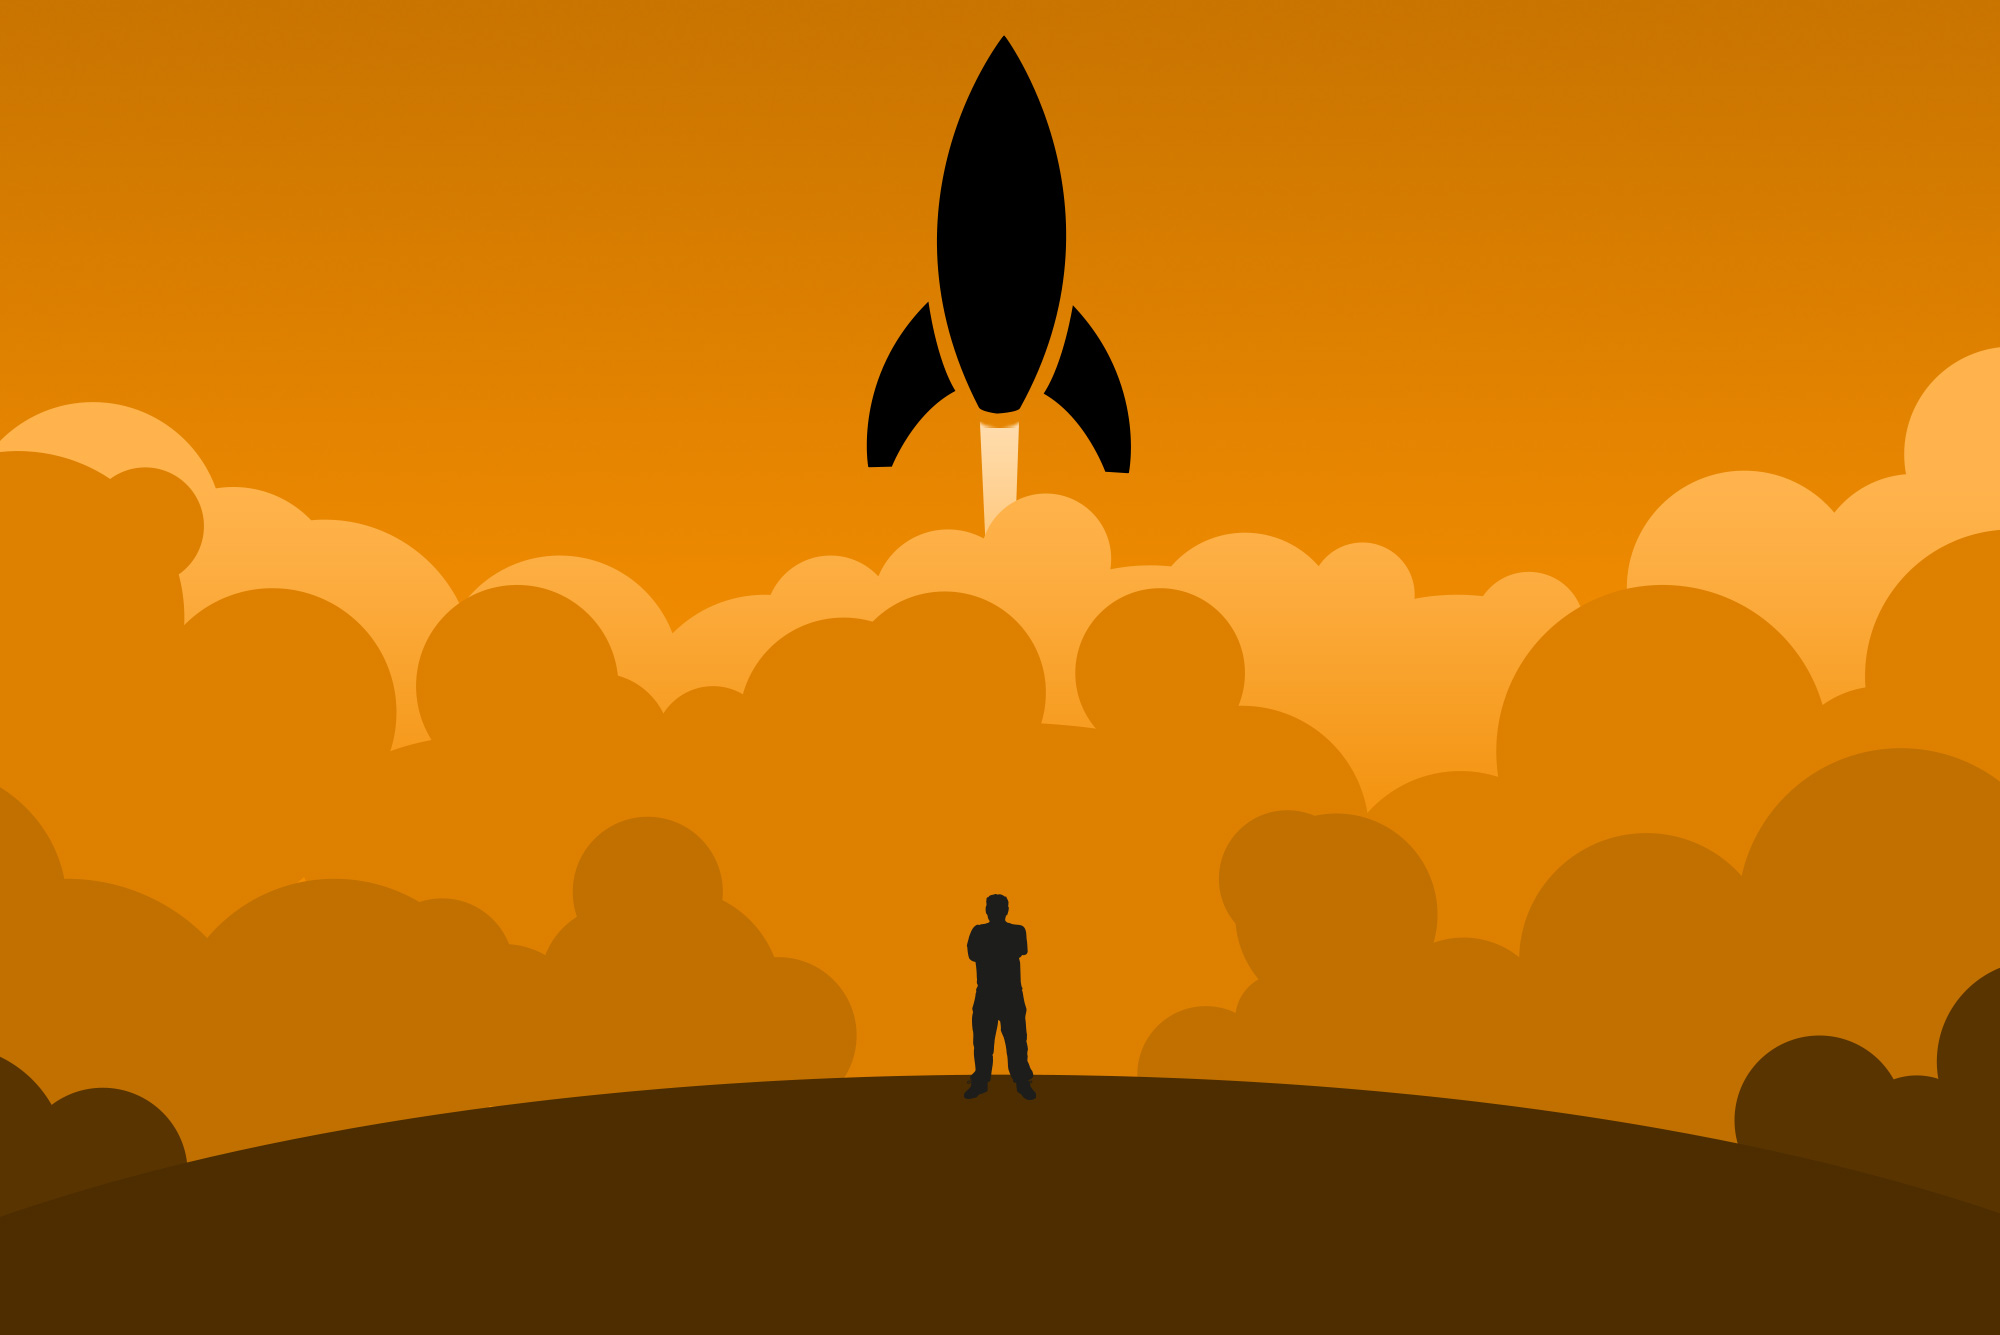 Spaceship on an orange background - Digital transformation